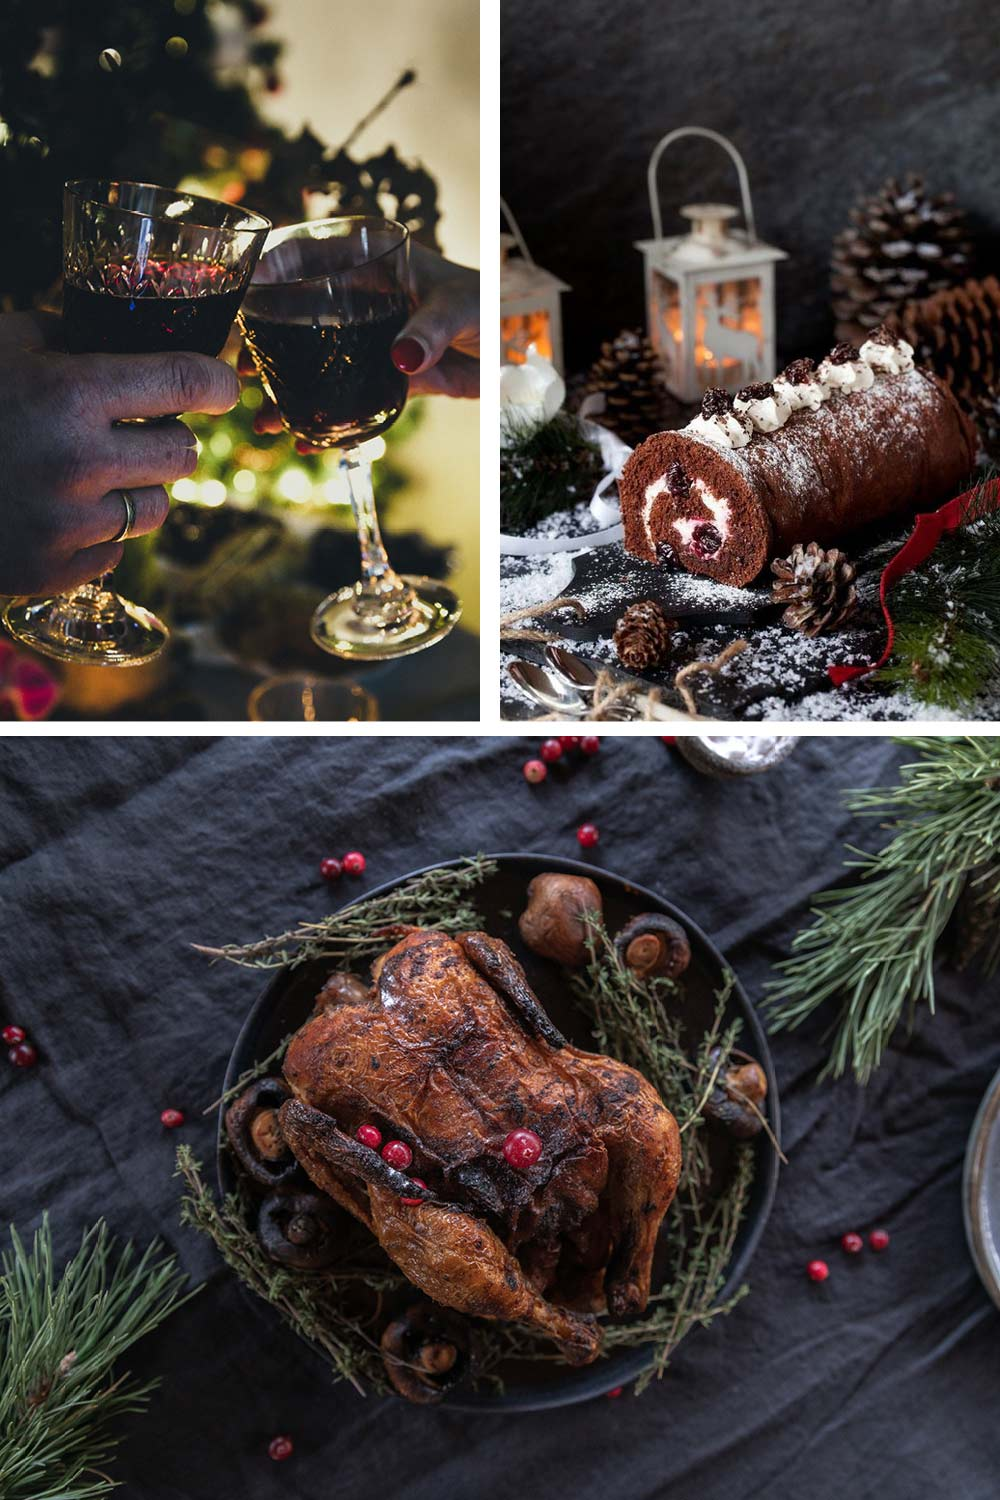 Prepare a Delicious Menu for the Perfect Christmas Eve